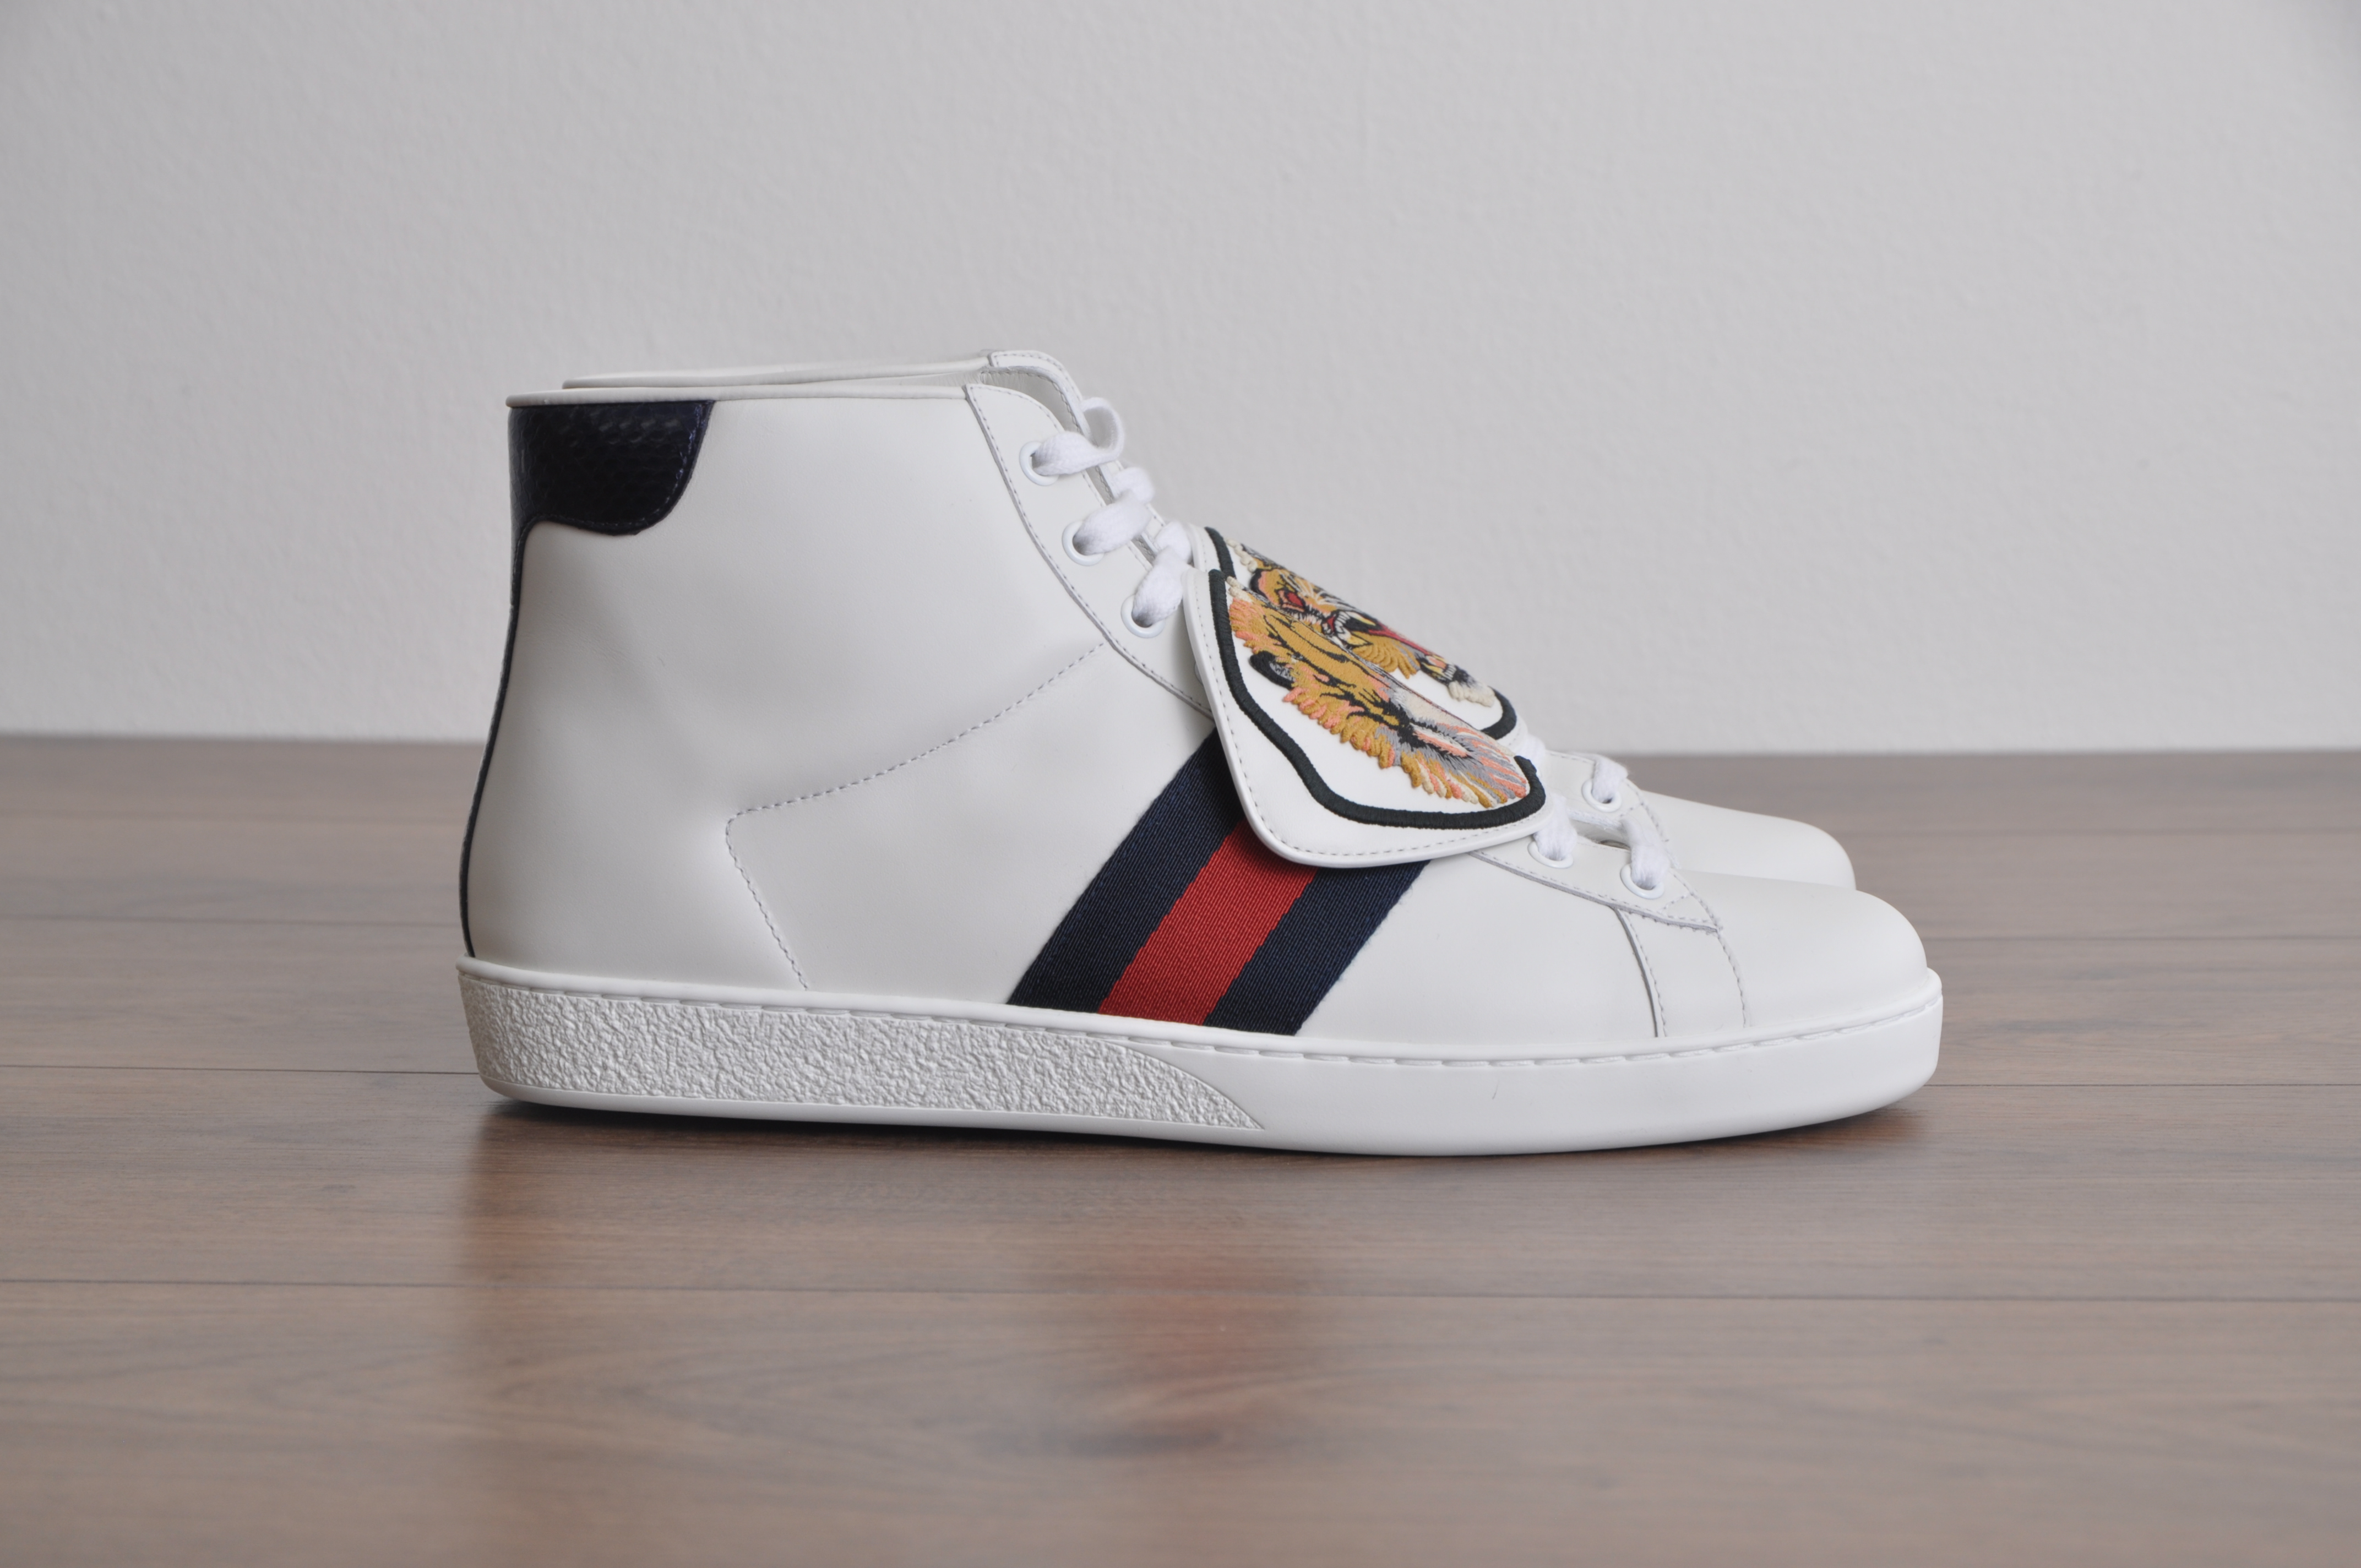 5fdcad39ef5 Gucci White Ace High Top Sneaker With Removable Embroidered Patches Size  10.5 - Hi-Top Sneakers for Sale - Grailed